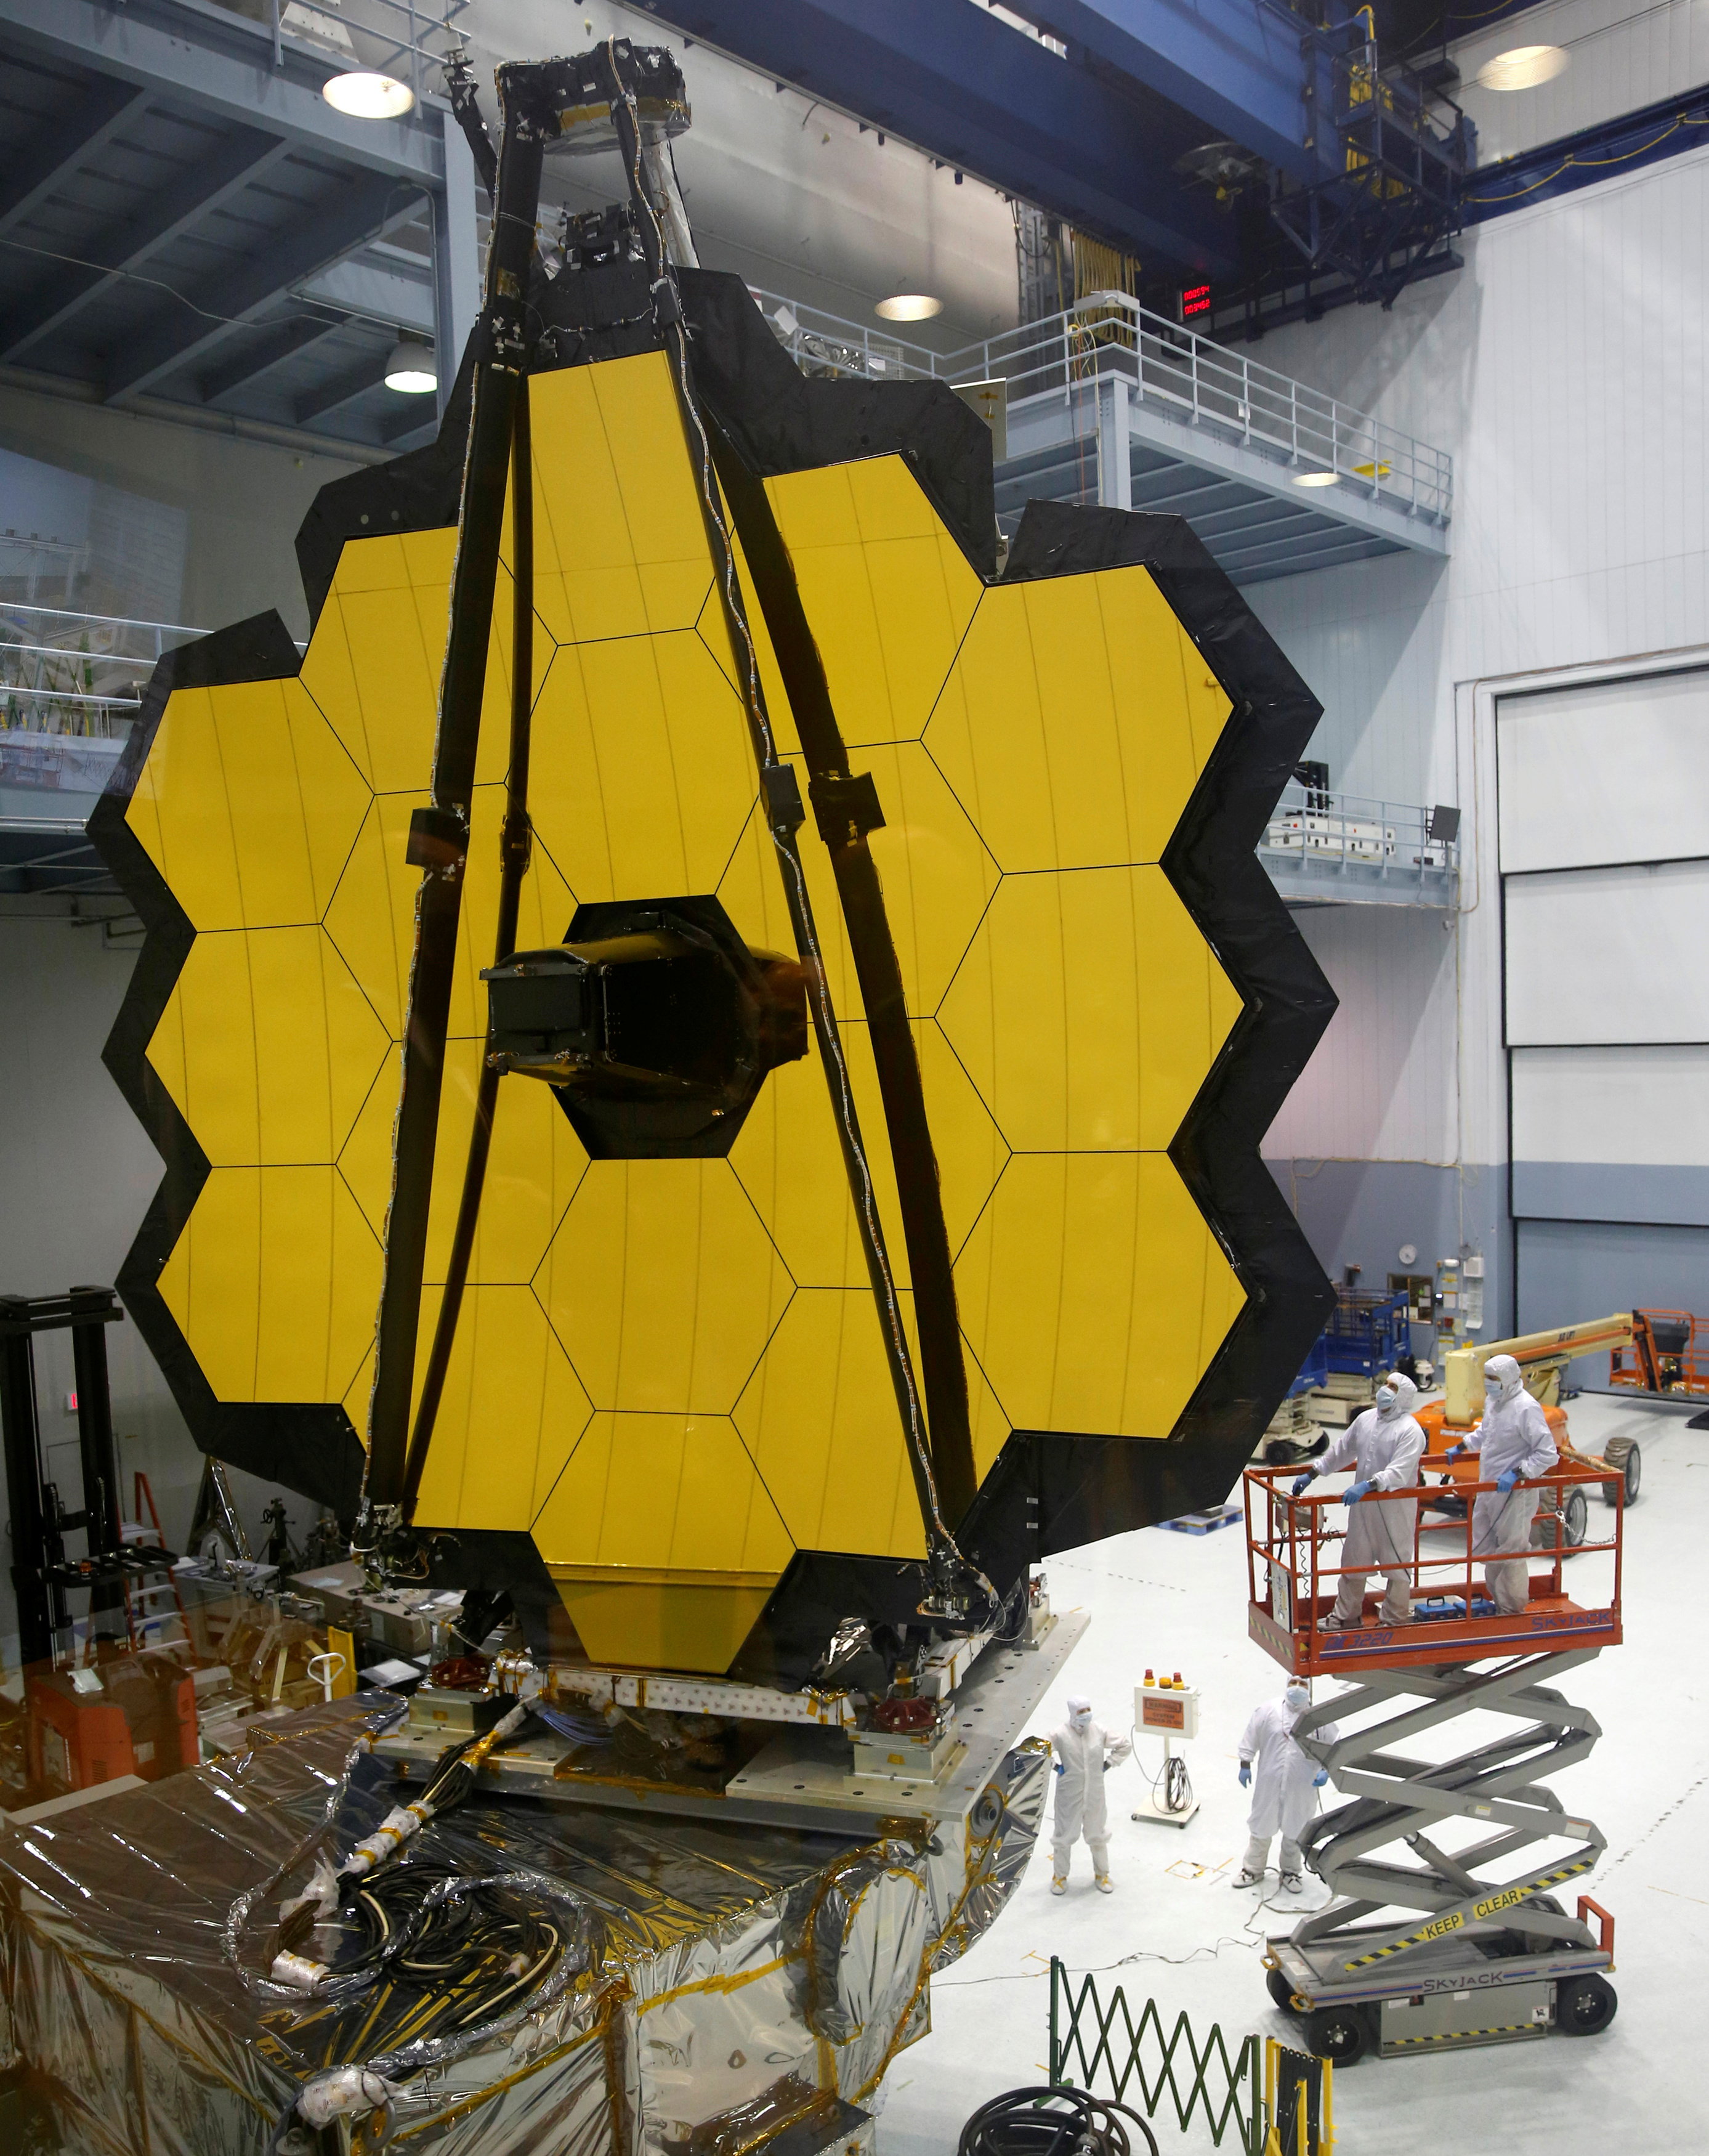 NASA workers look up at the James Webb Space Telescope Mirror during it's media reveal at NASAís Goddard Space Flight Center at Greenbelt, Maryland on Nov. 2, 2016.